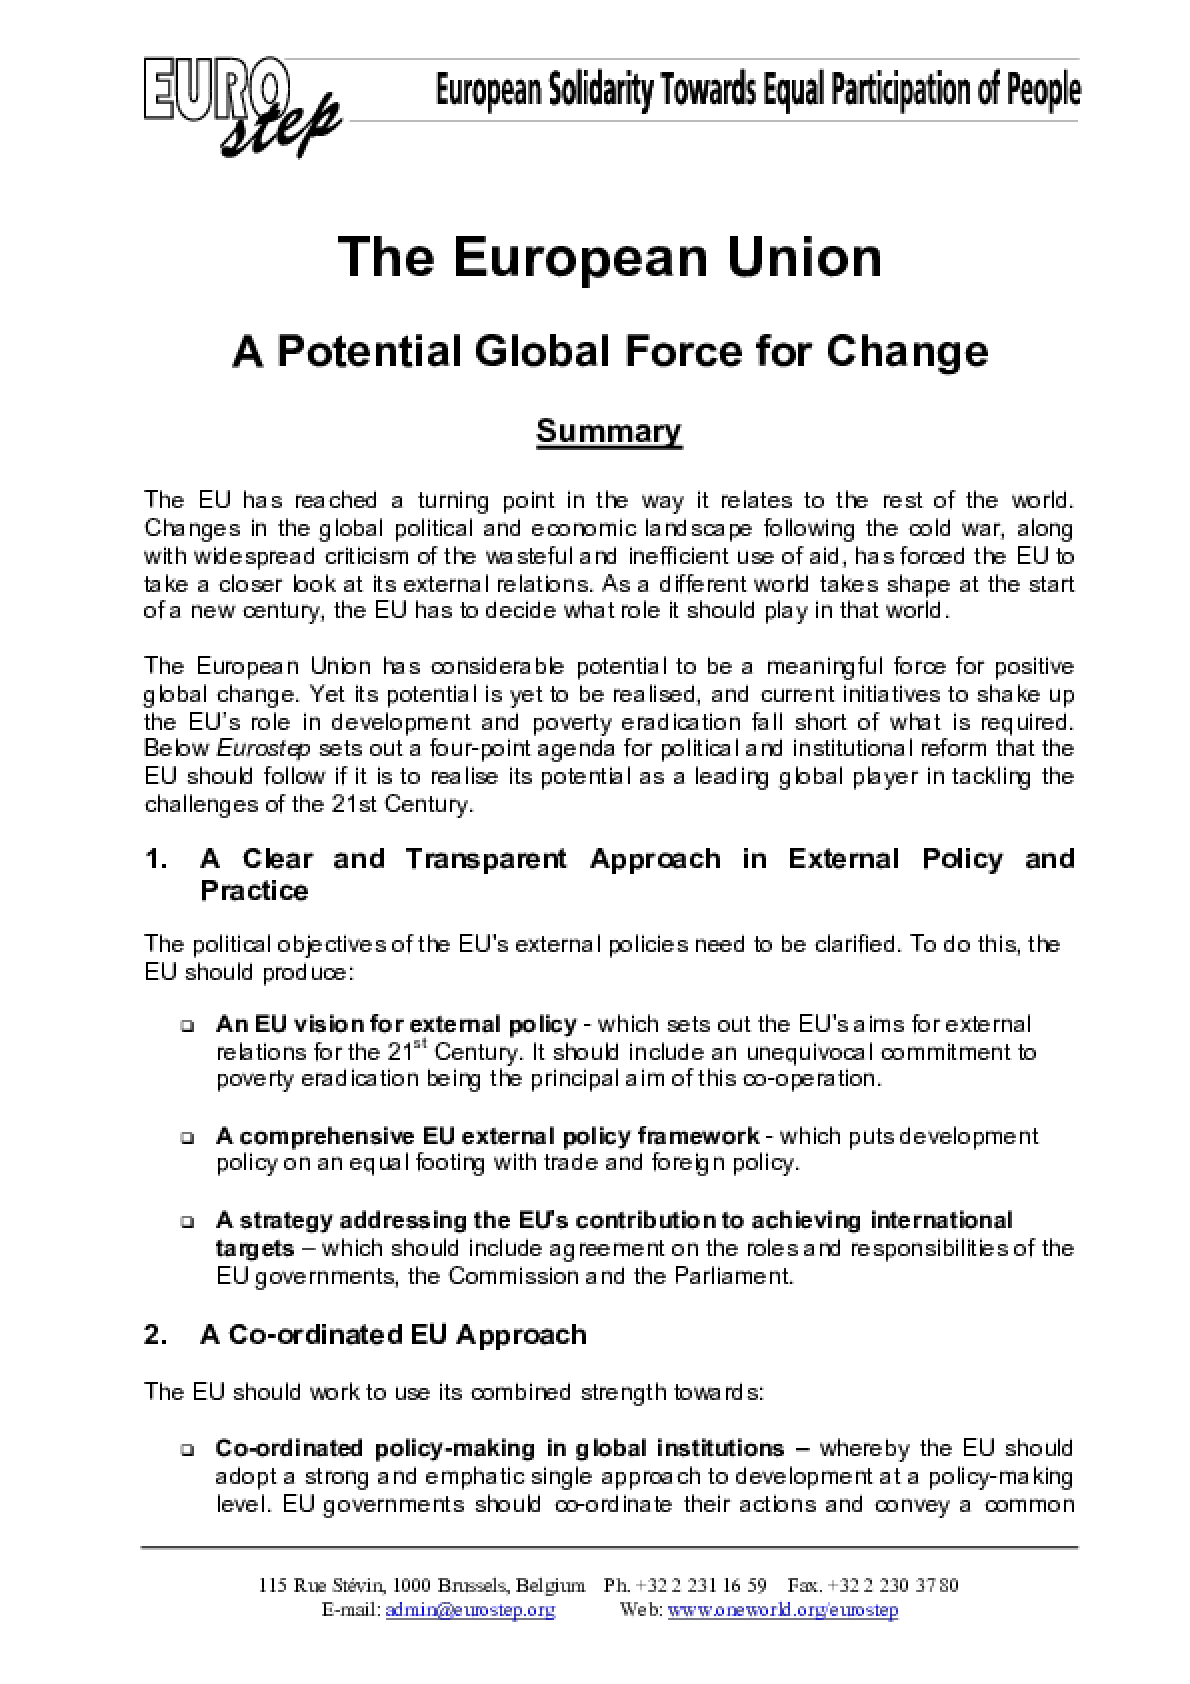 The European Union: A potential global force for change